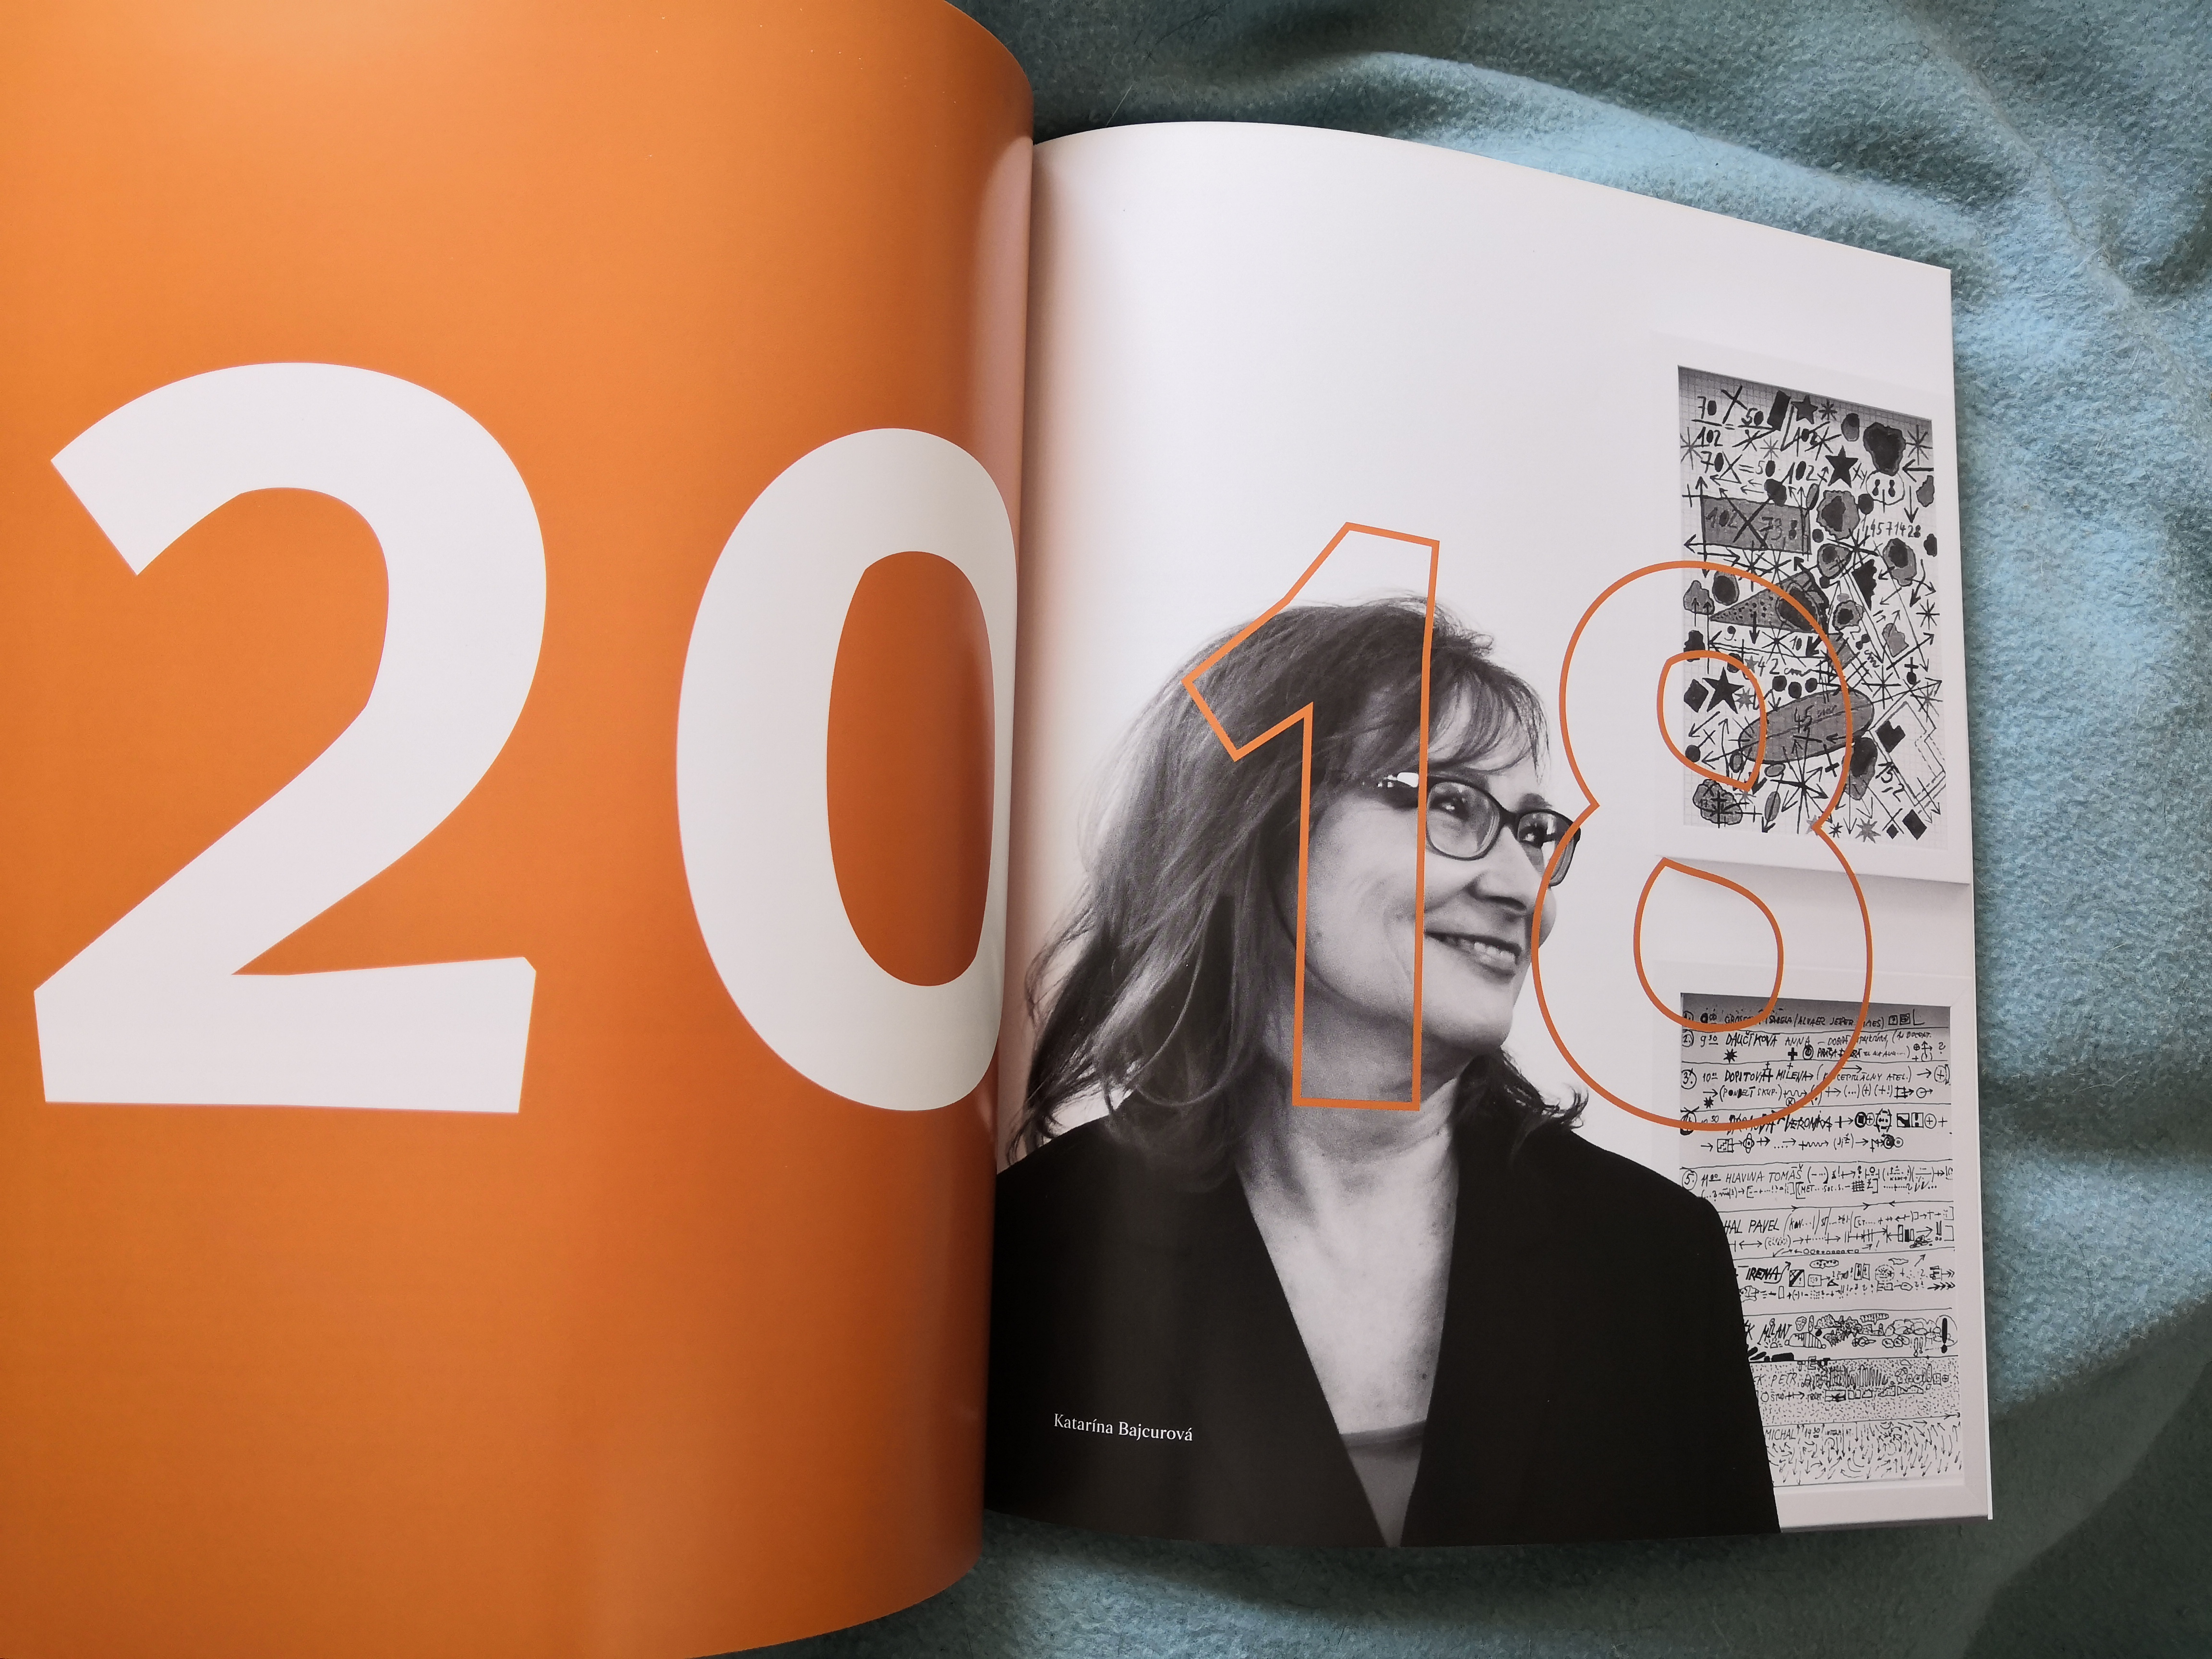 Gallery 19, 10year book, 2020